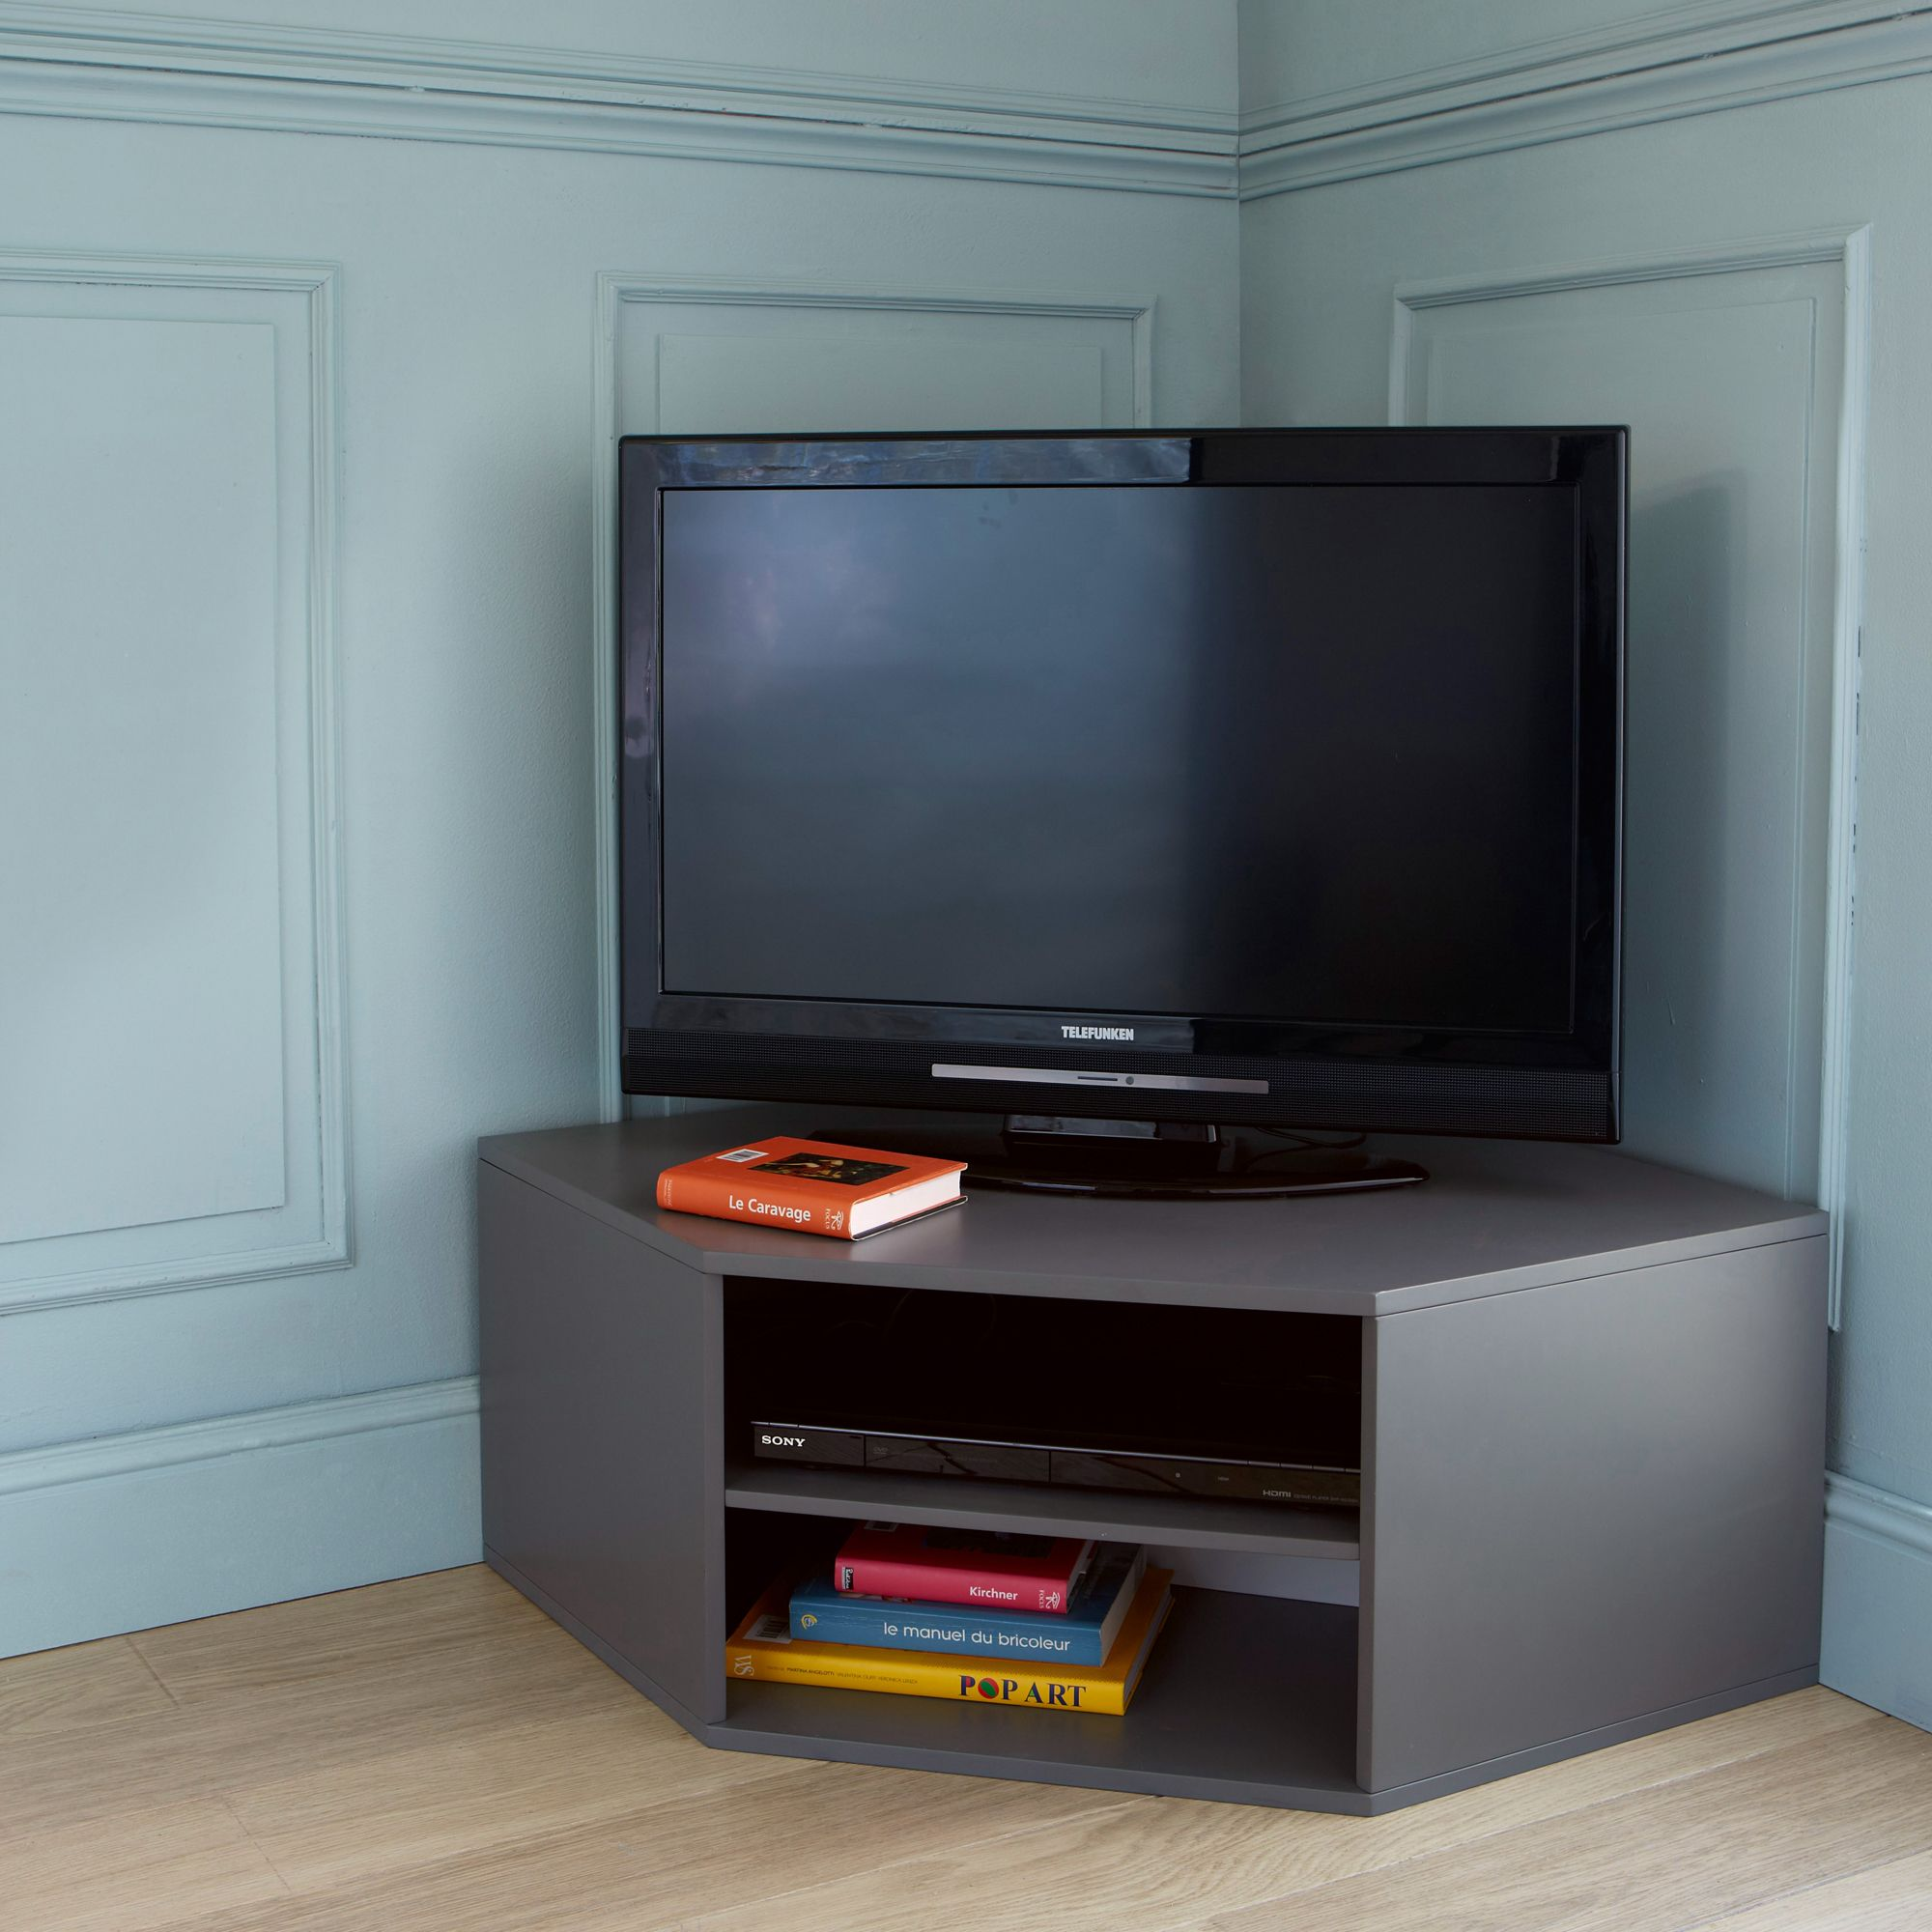 Meuble Tv D Angle Kolorcaz 3 Suisses Meuble Tv Pinterest  # Meubles D'Angle Salon